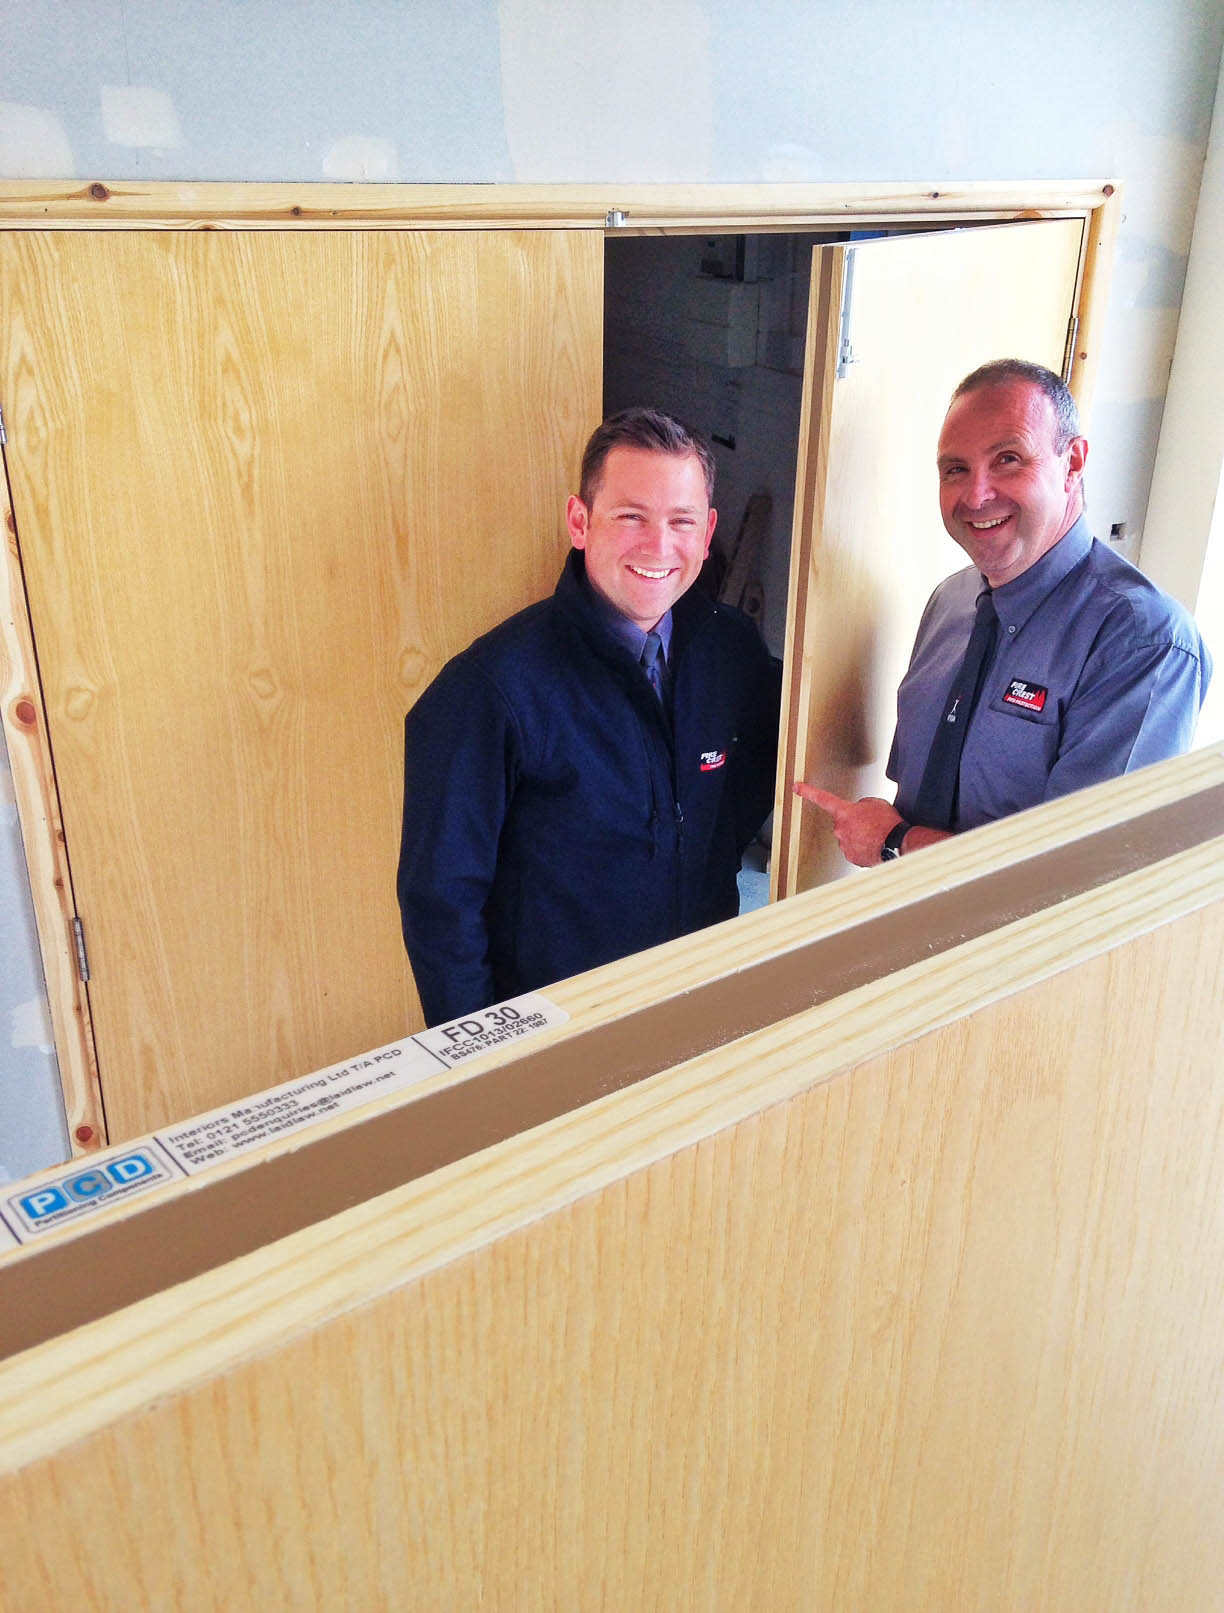 Fire Crest's operations director, Harry Hart (l), with MD Robert Catanzaro